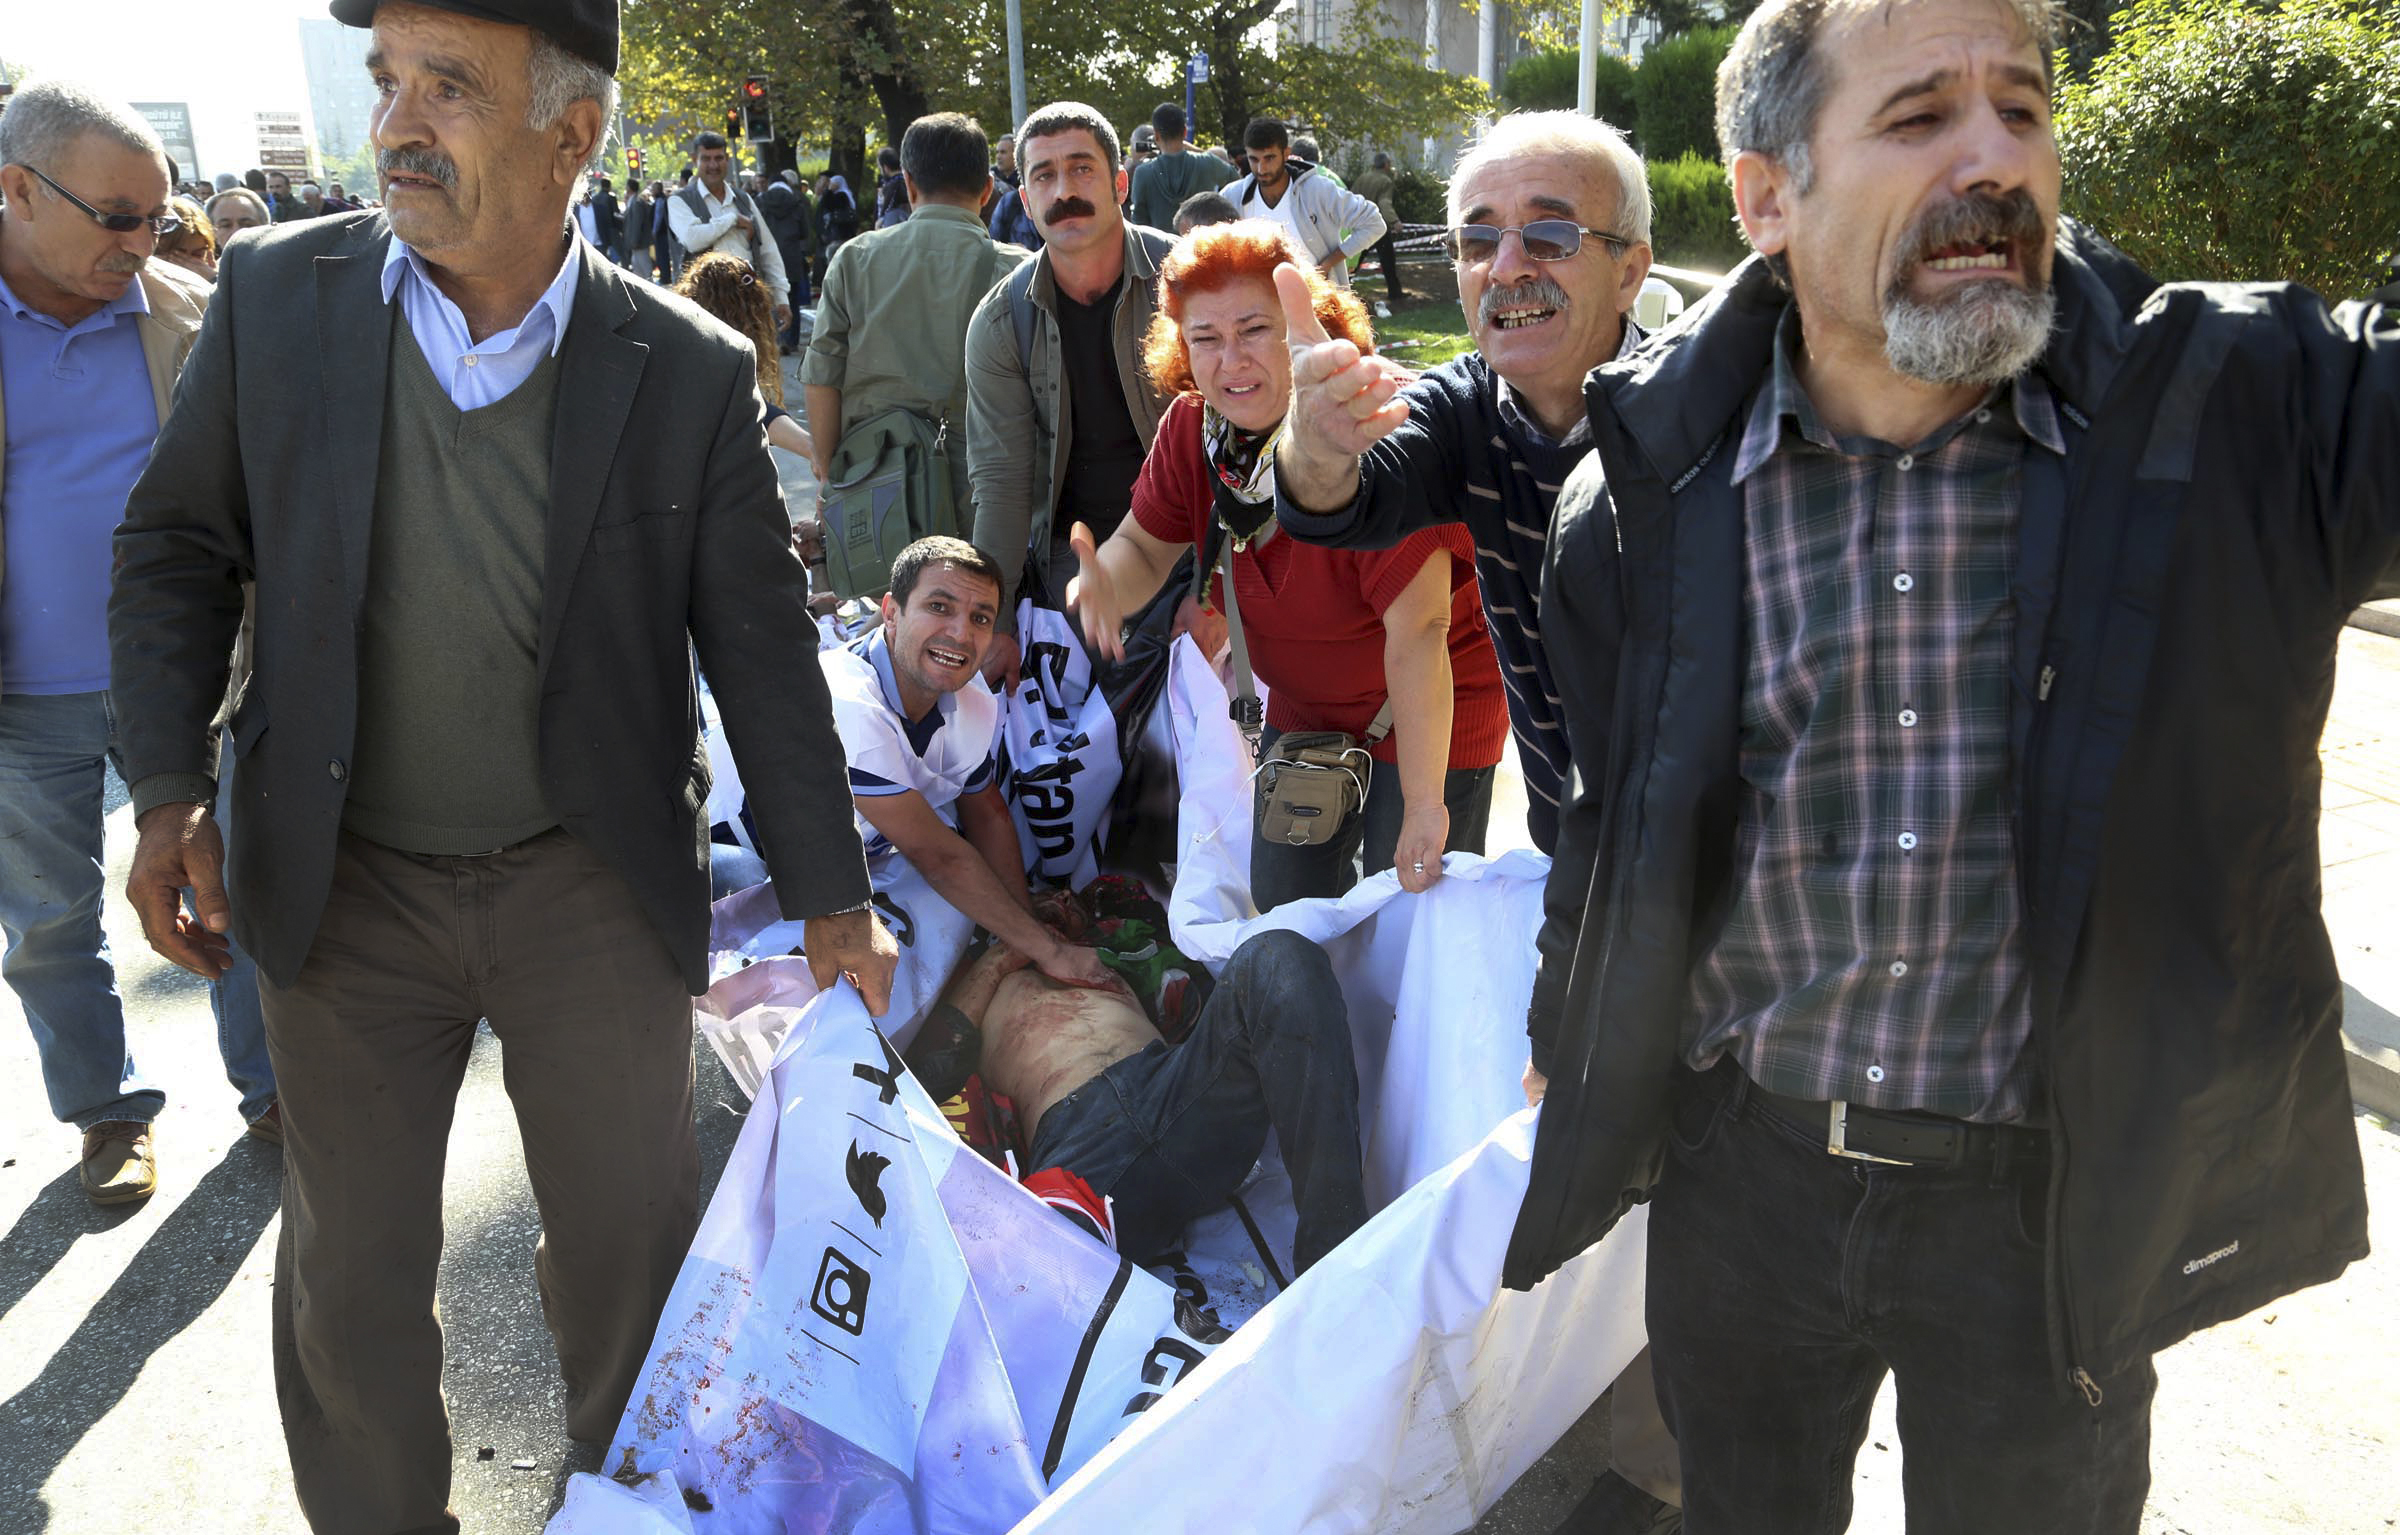 People carry a wounded person from the area of an explosion in Ankara, Turkey, on Oct. 10, 2015.